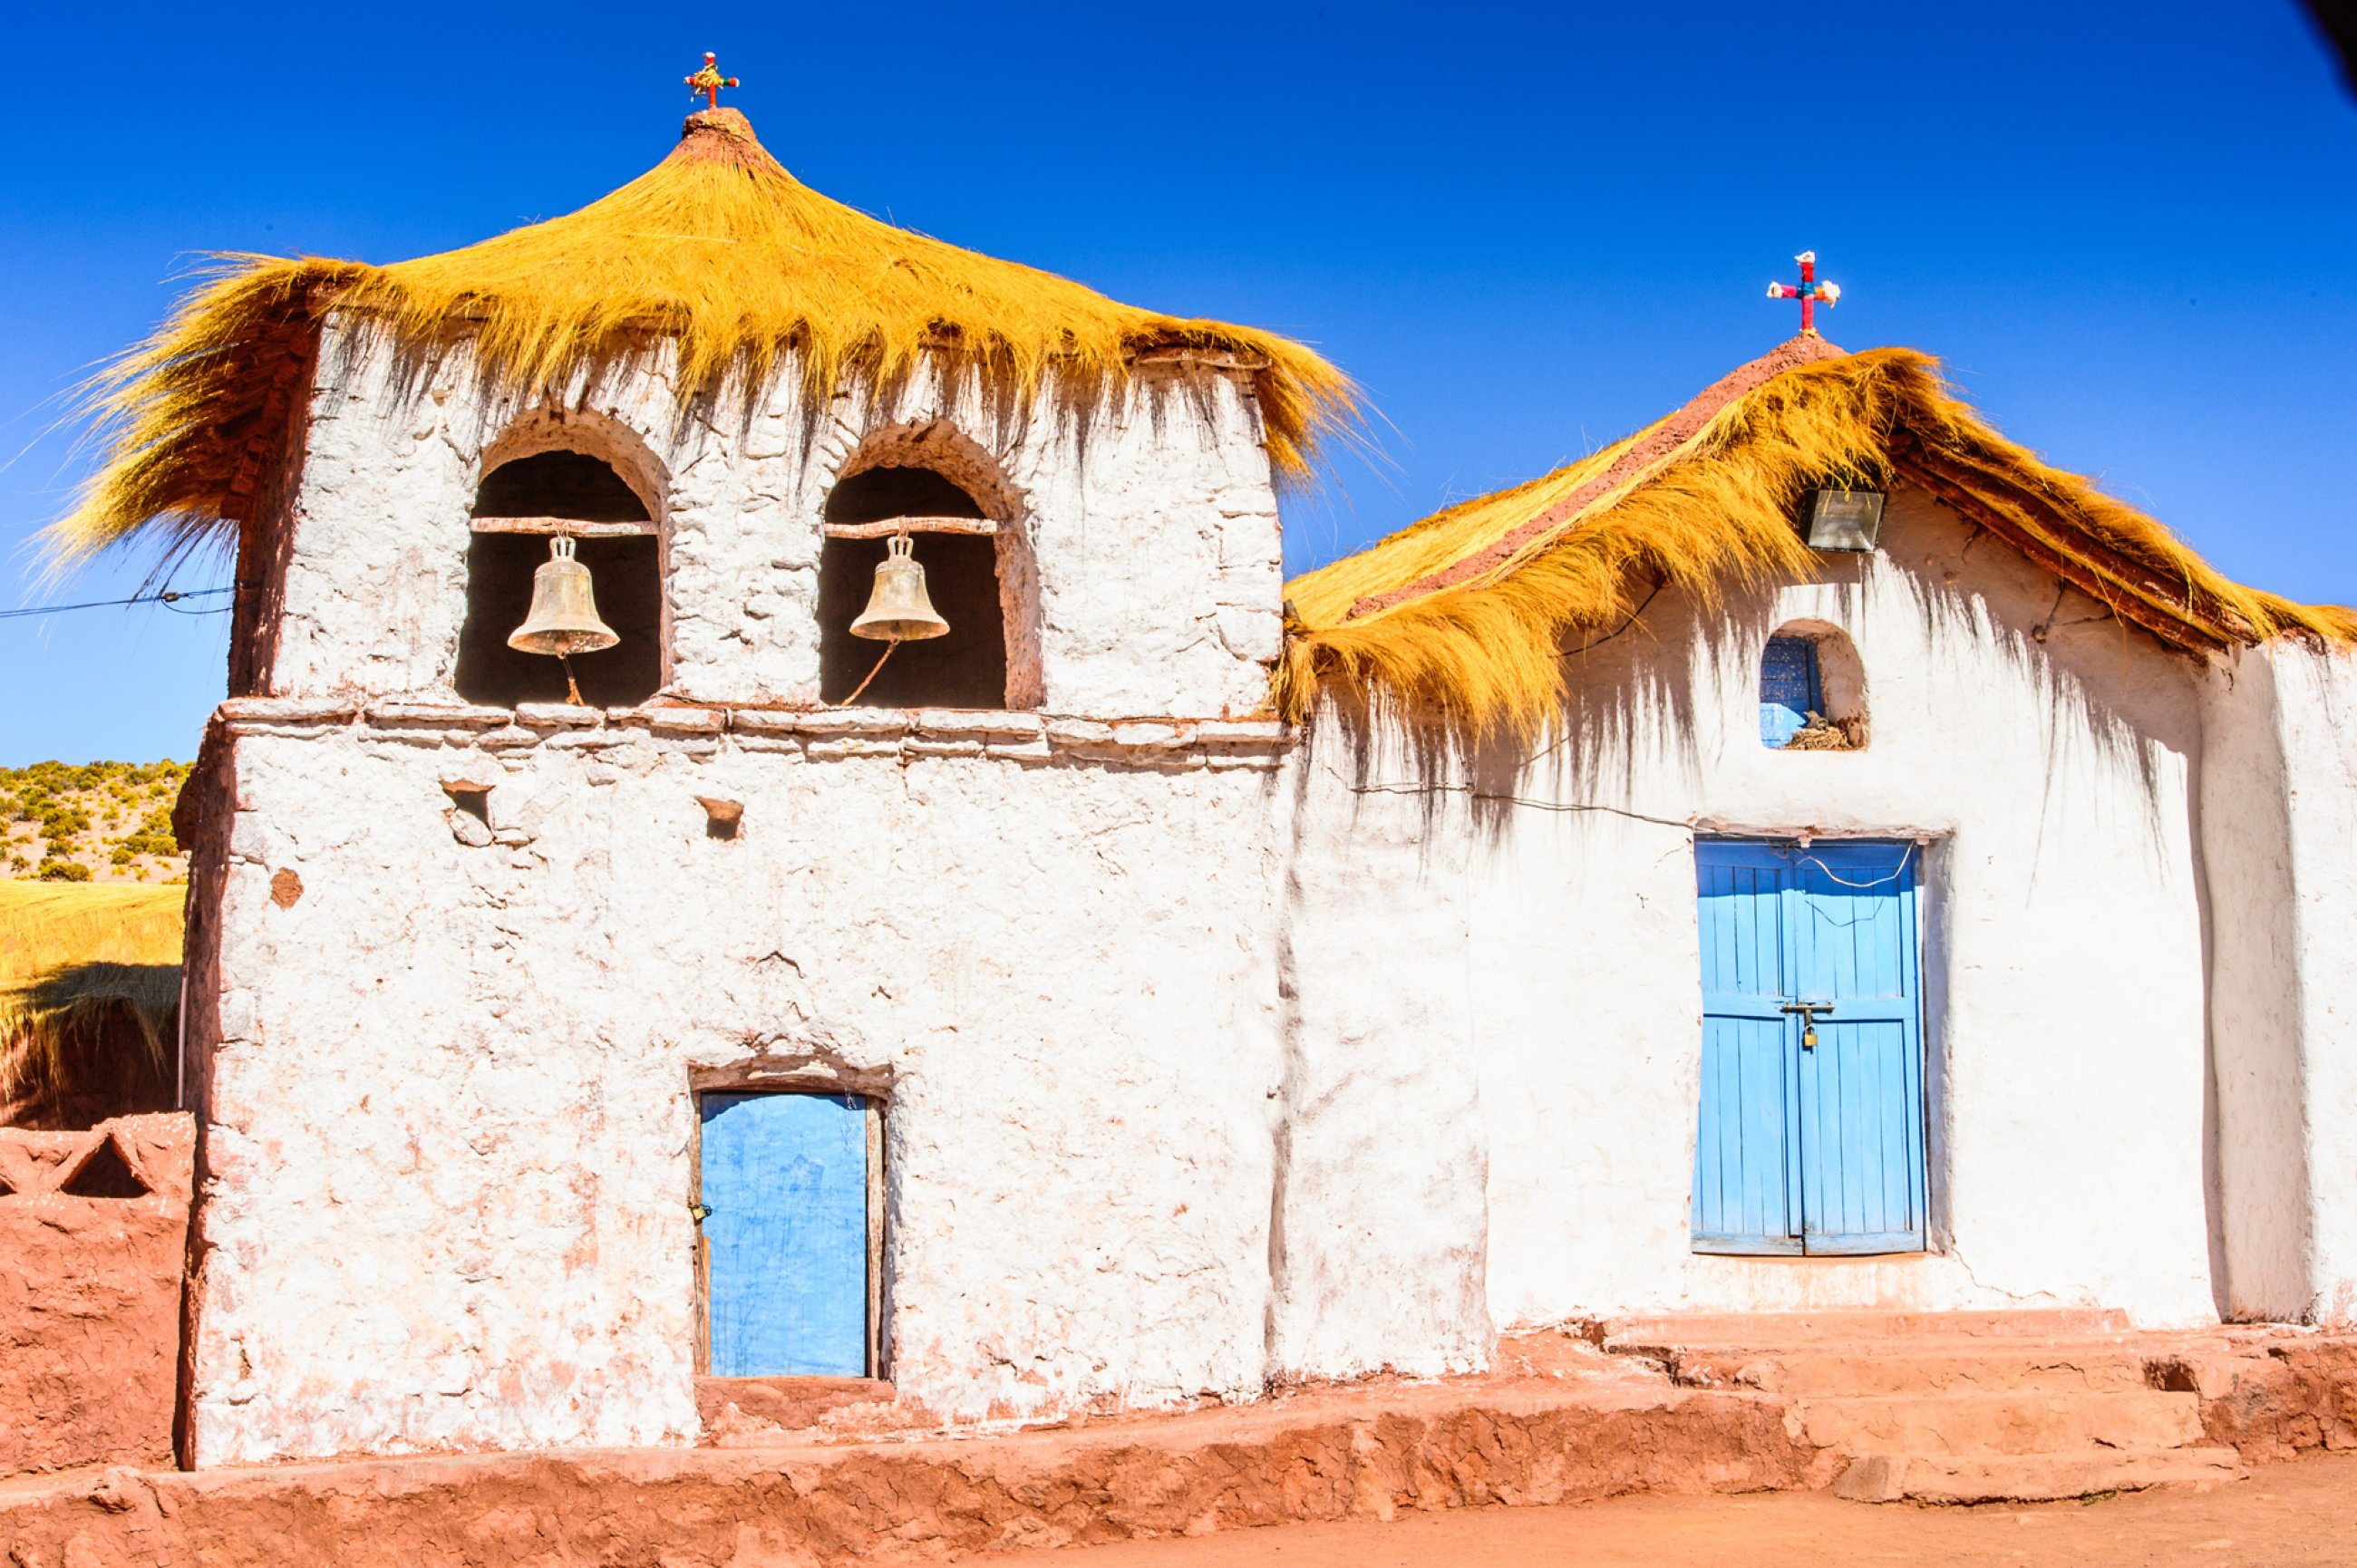 https://bubo.sk/uploads/galleries/7397/san-pedro-de-atacama-shutterstock-210126757-2-.jpg